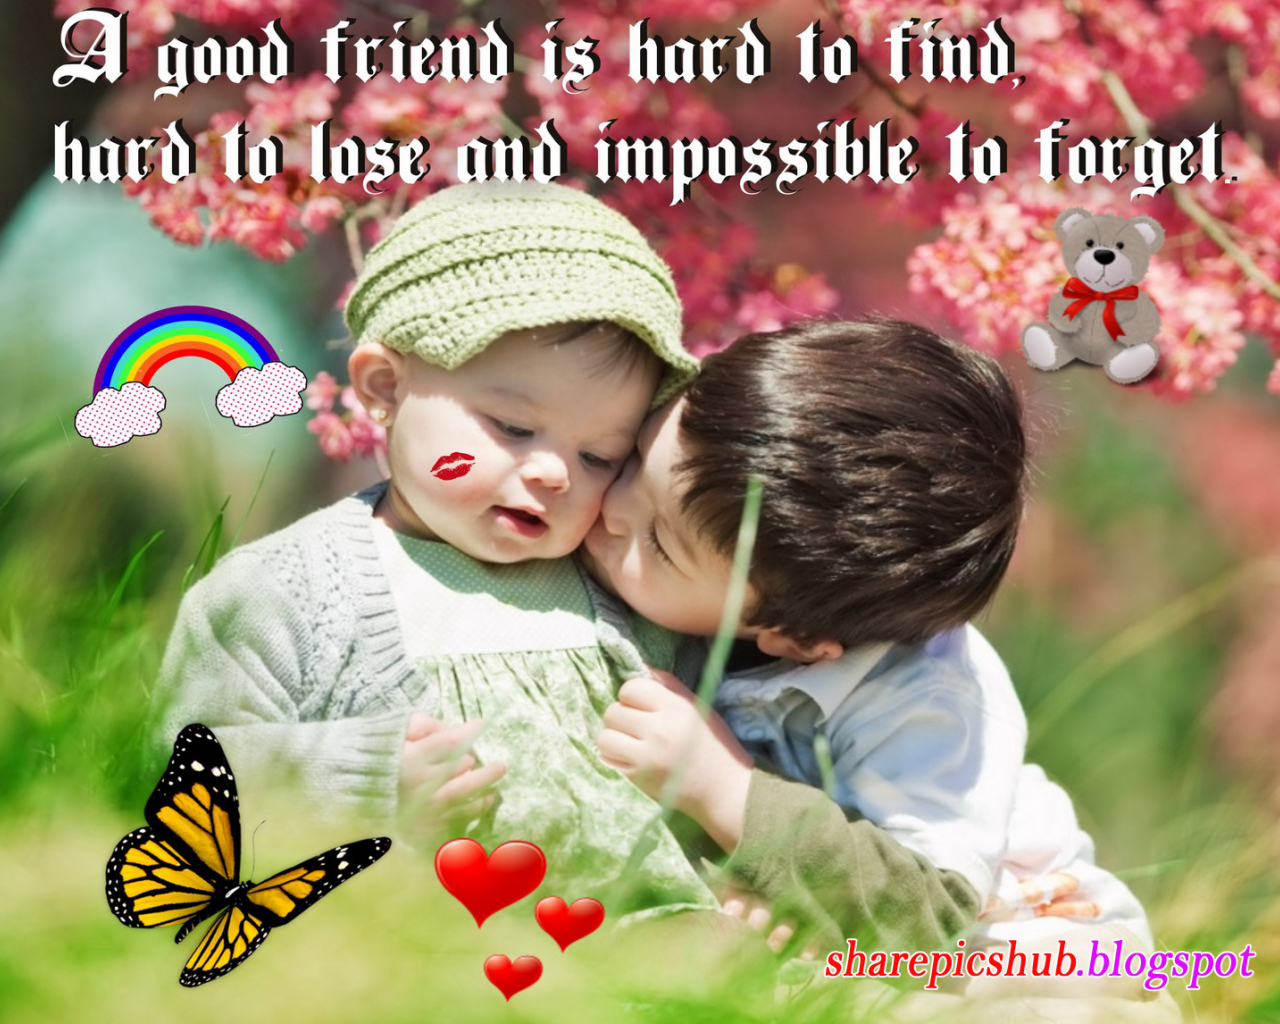 Best Friends Wallpapers For Facebook Beautiful Friendship Quote Wallpaper A Good